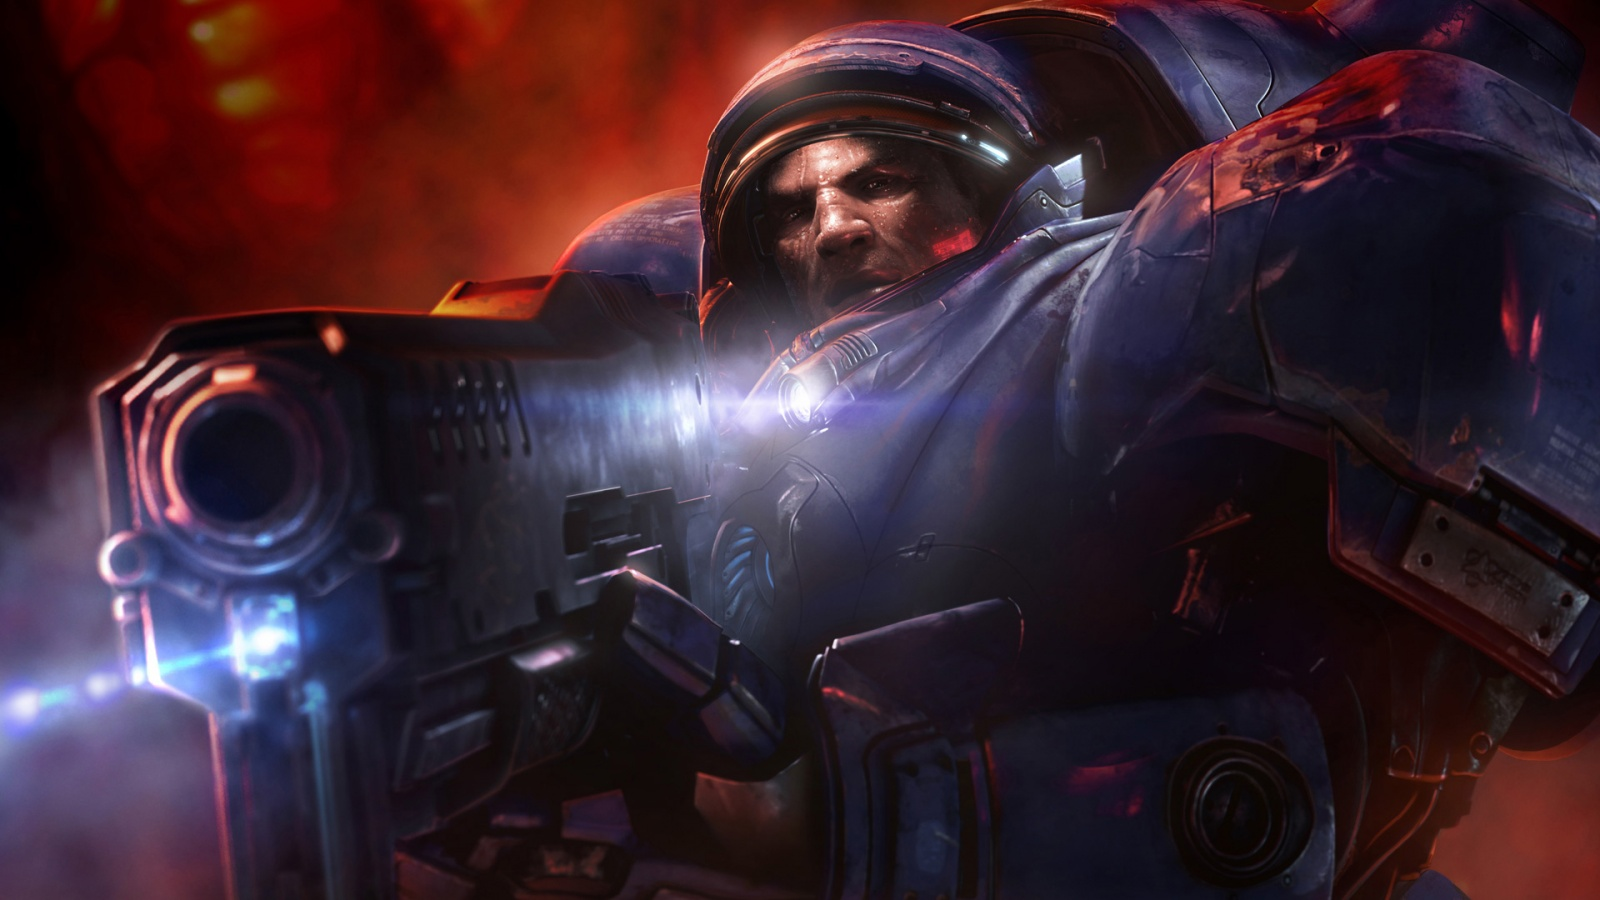 Starcraft Wallpapers in jpg format for free